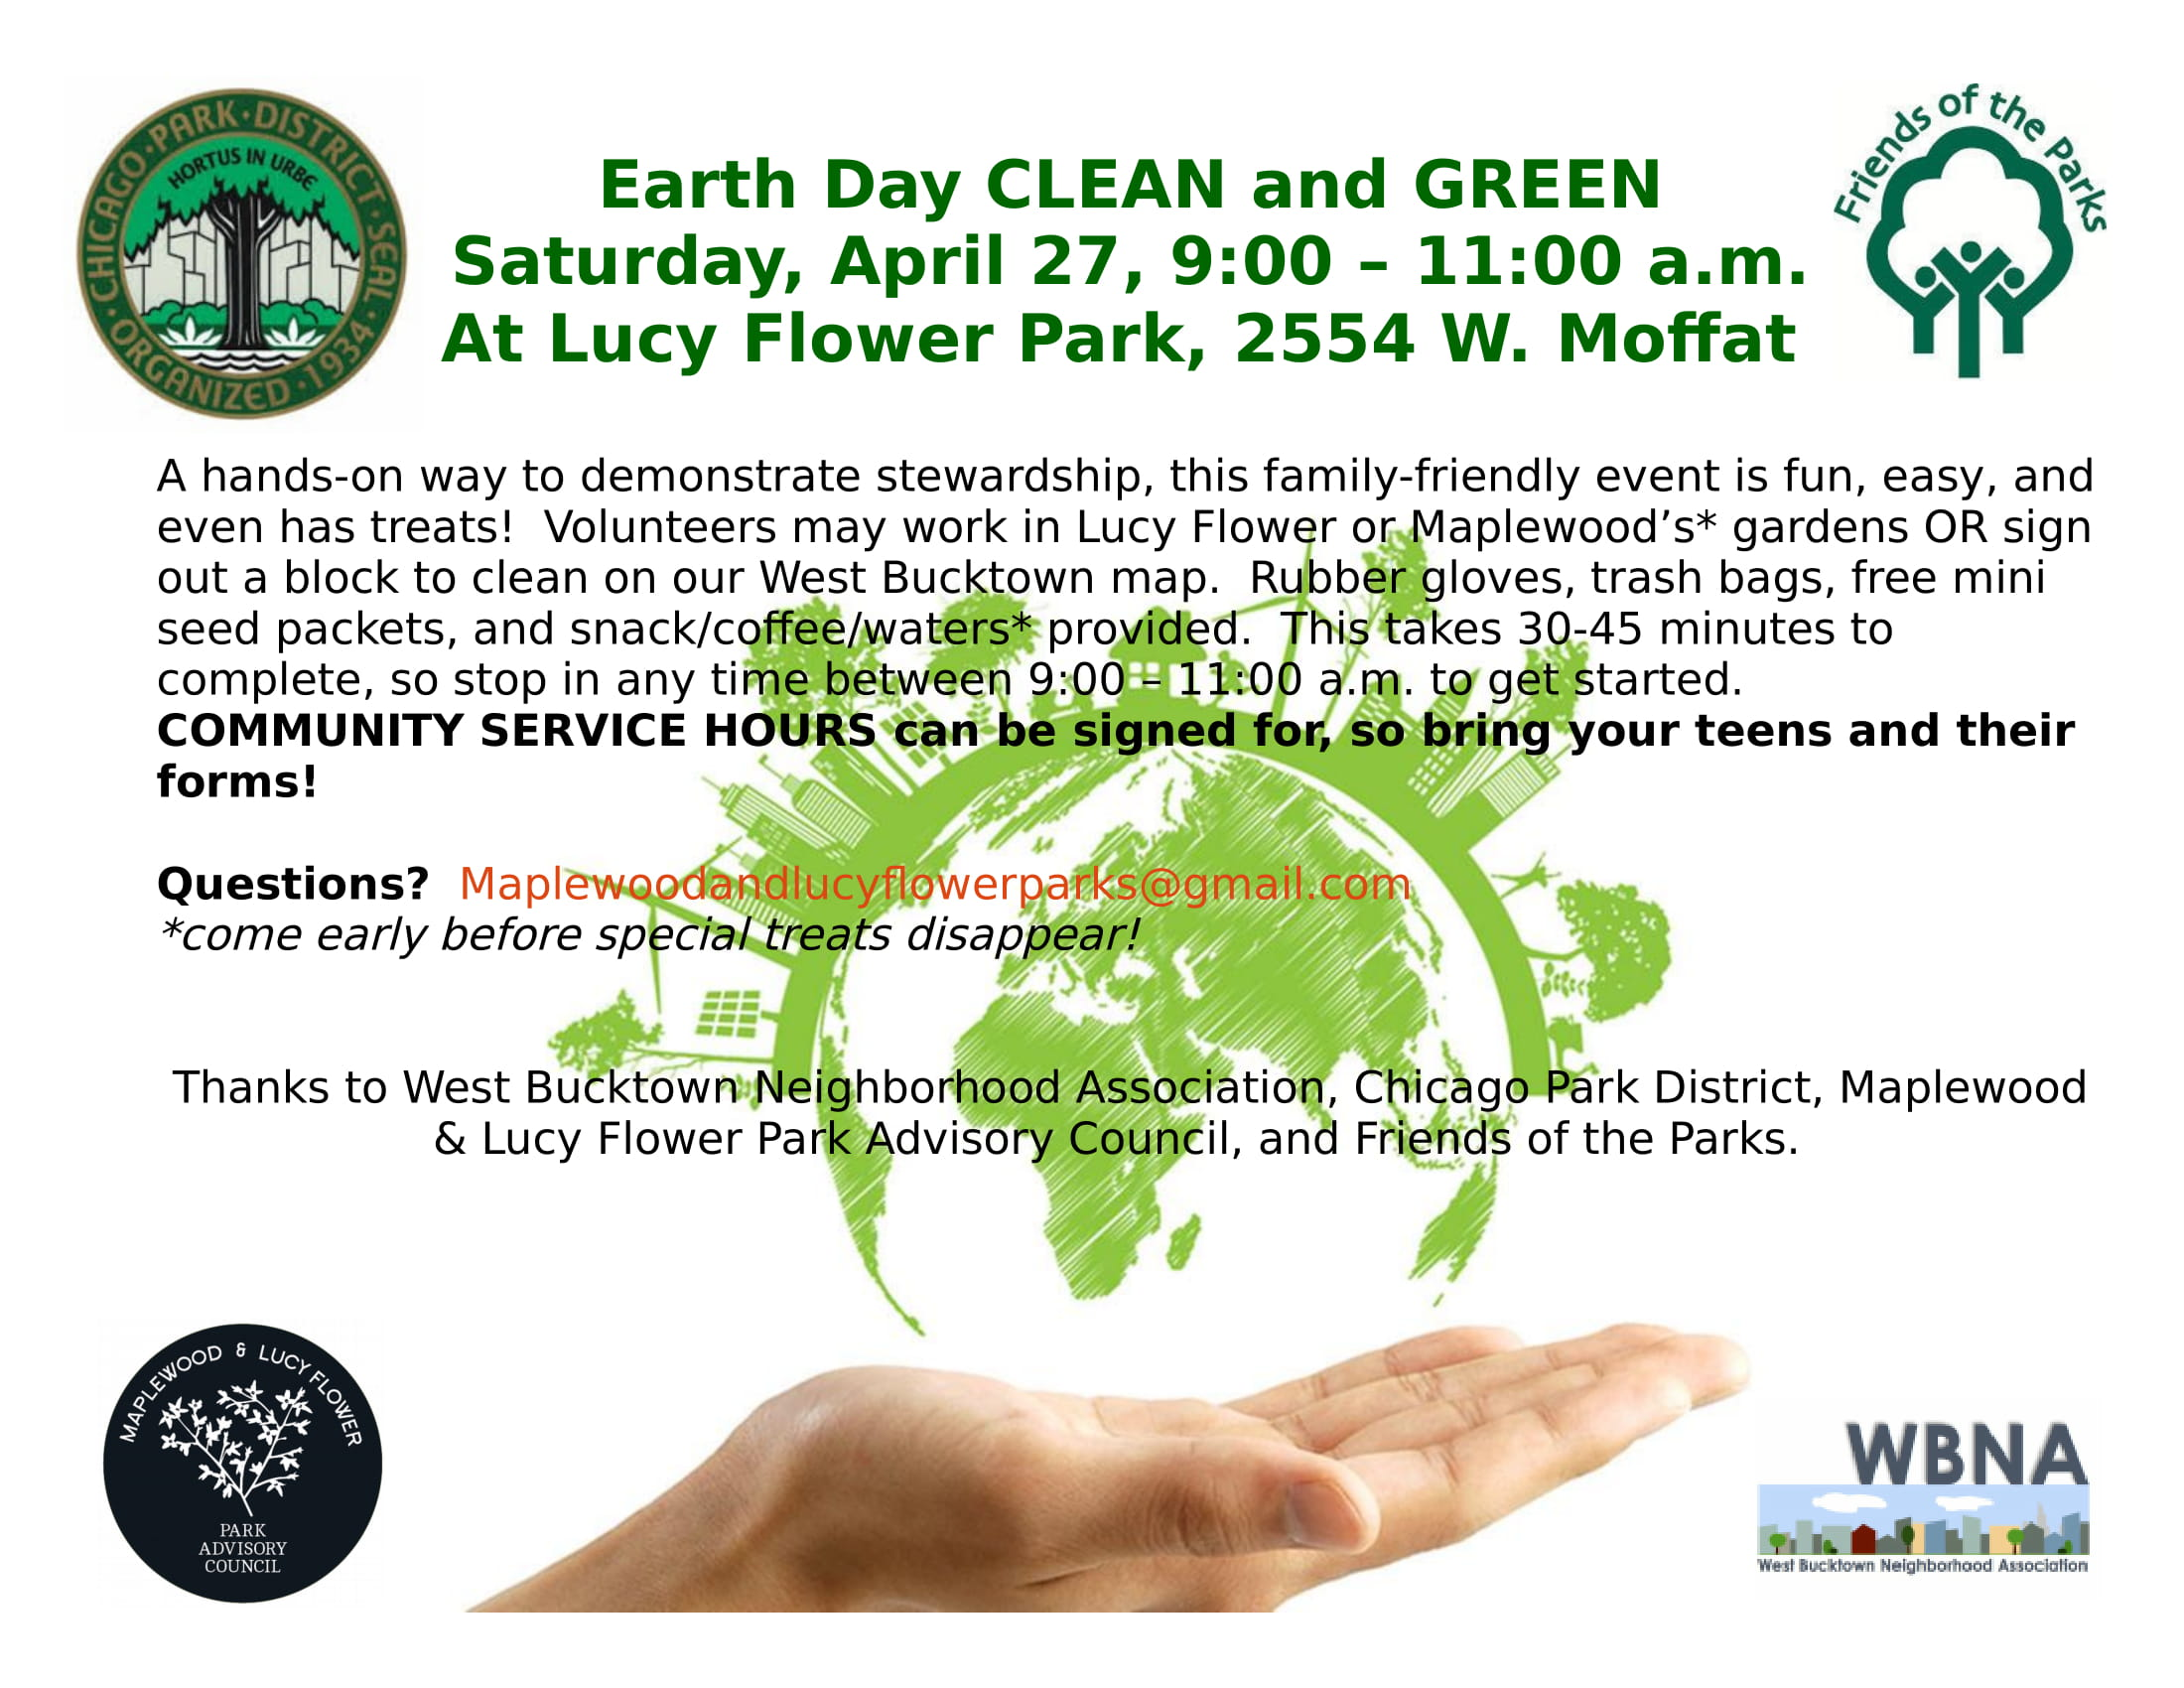 2019 Earth Day clean and green-1.jpg